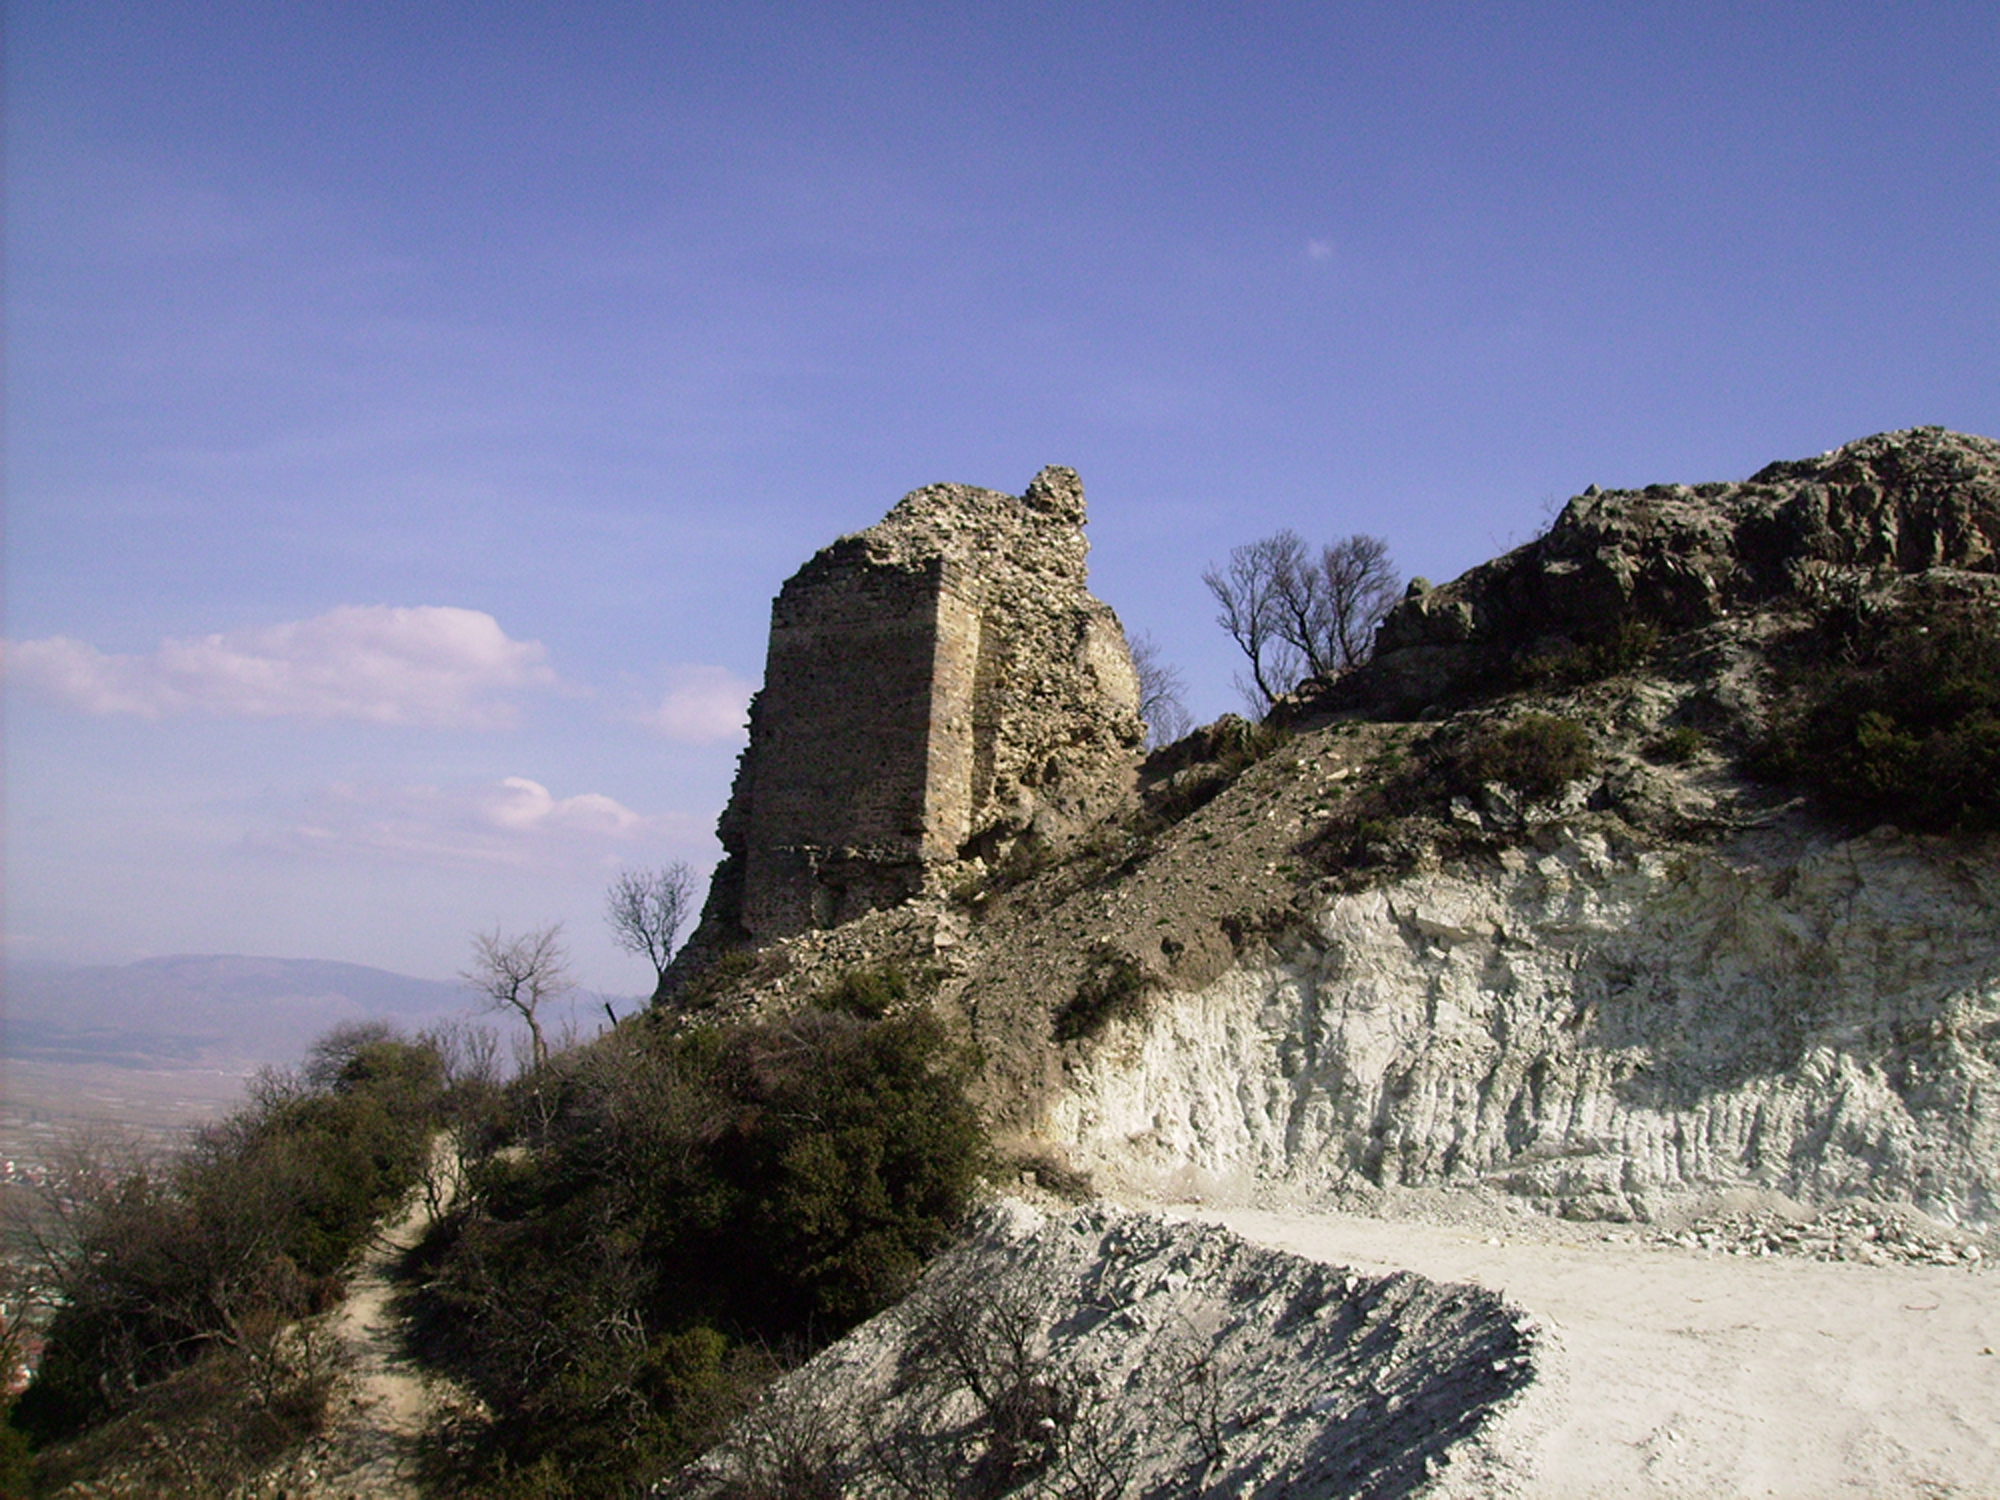 File:North Czar's Tower in Strumica, Macedonia.jpg ...